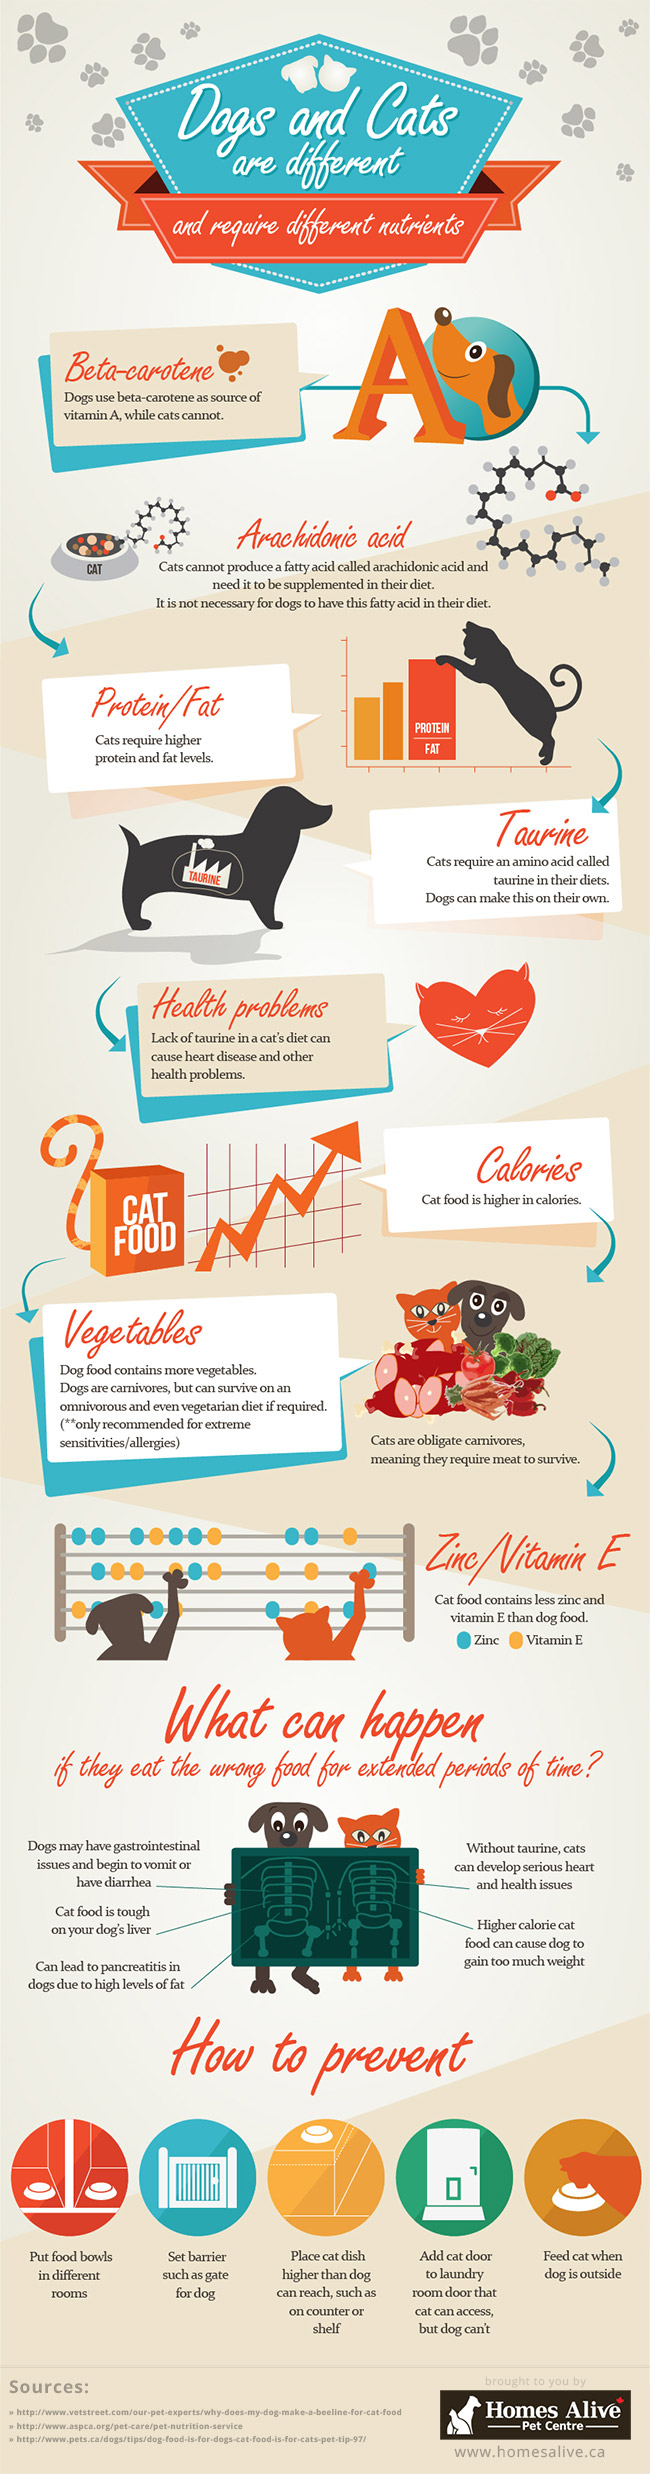 Differences Between Dog & Cat Foods